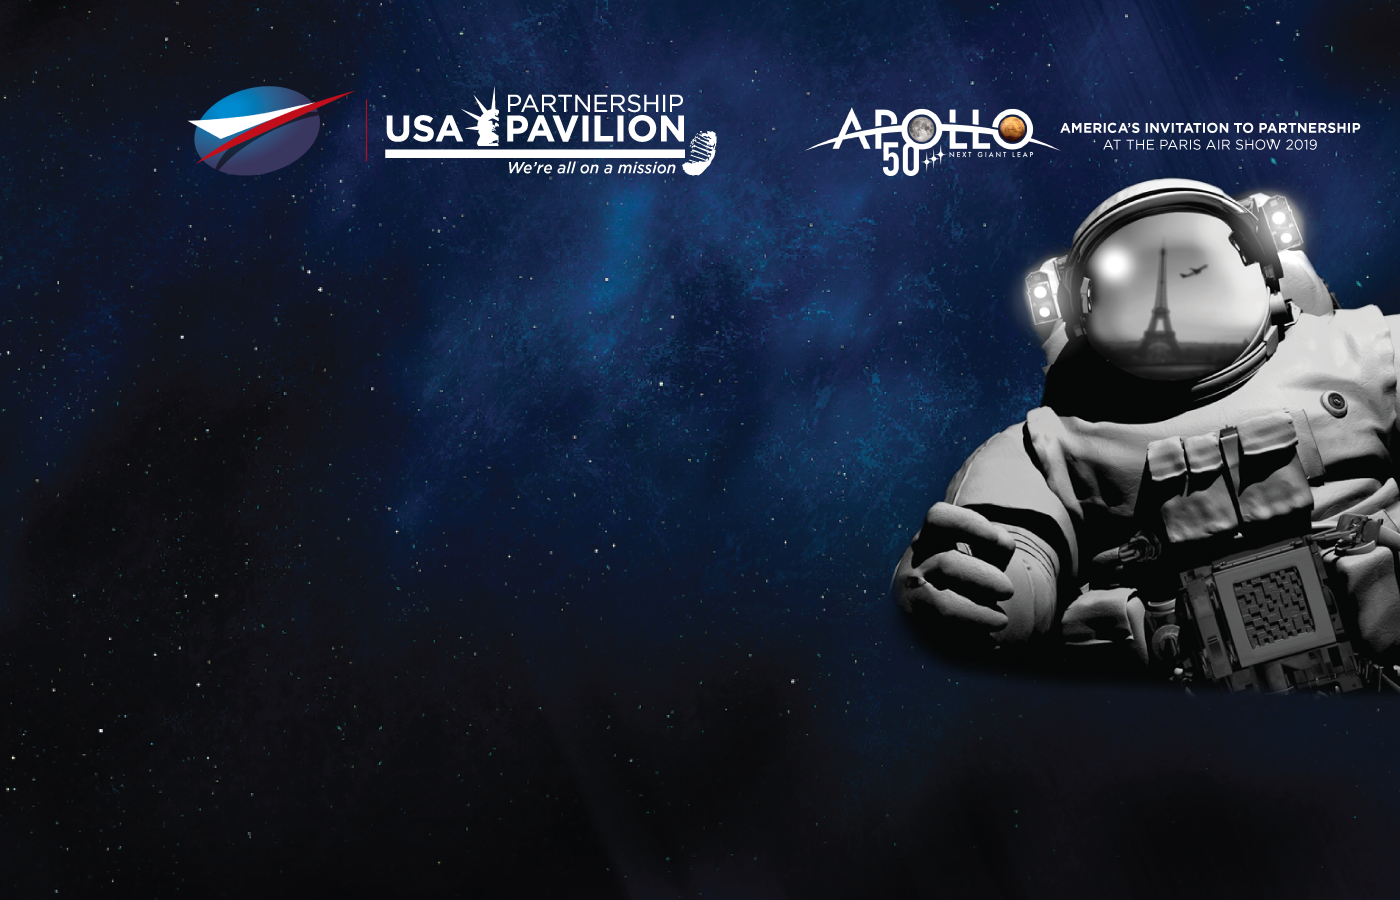 Apollo 50 Paris Mission USA Partnership Pavilion Paris Air Show 2019